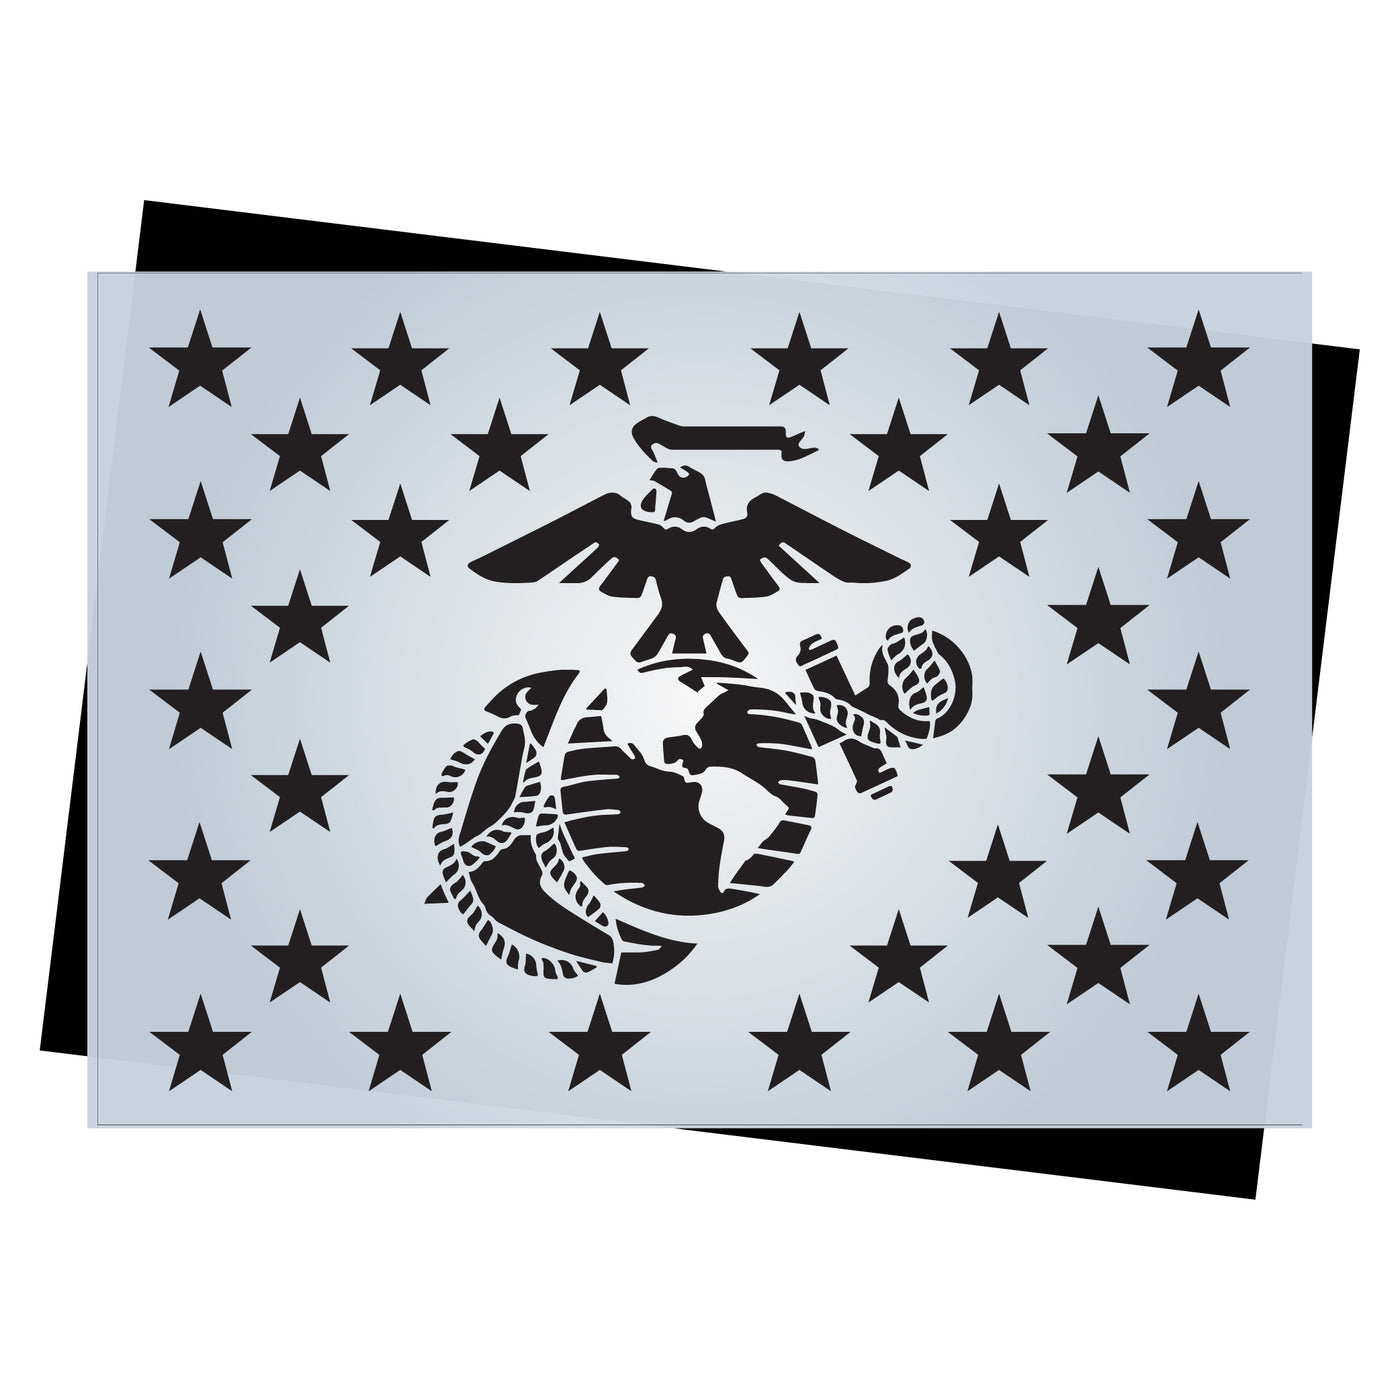 image regarding American Flag Star Stencil Printable named Star Market Templates for Craftsmen of AMERICAN Picket Flags